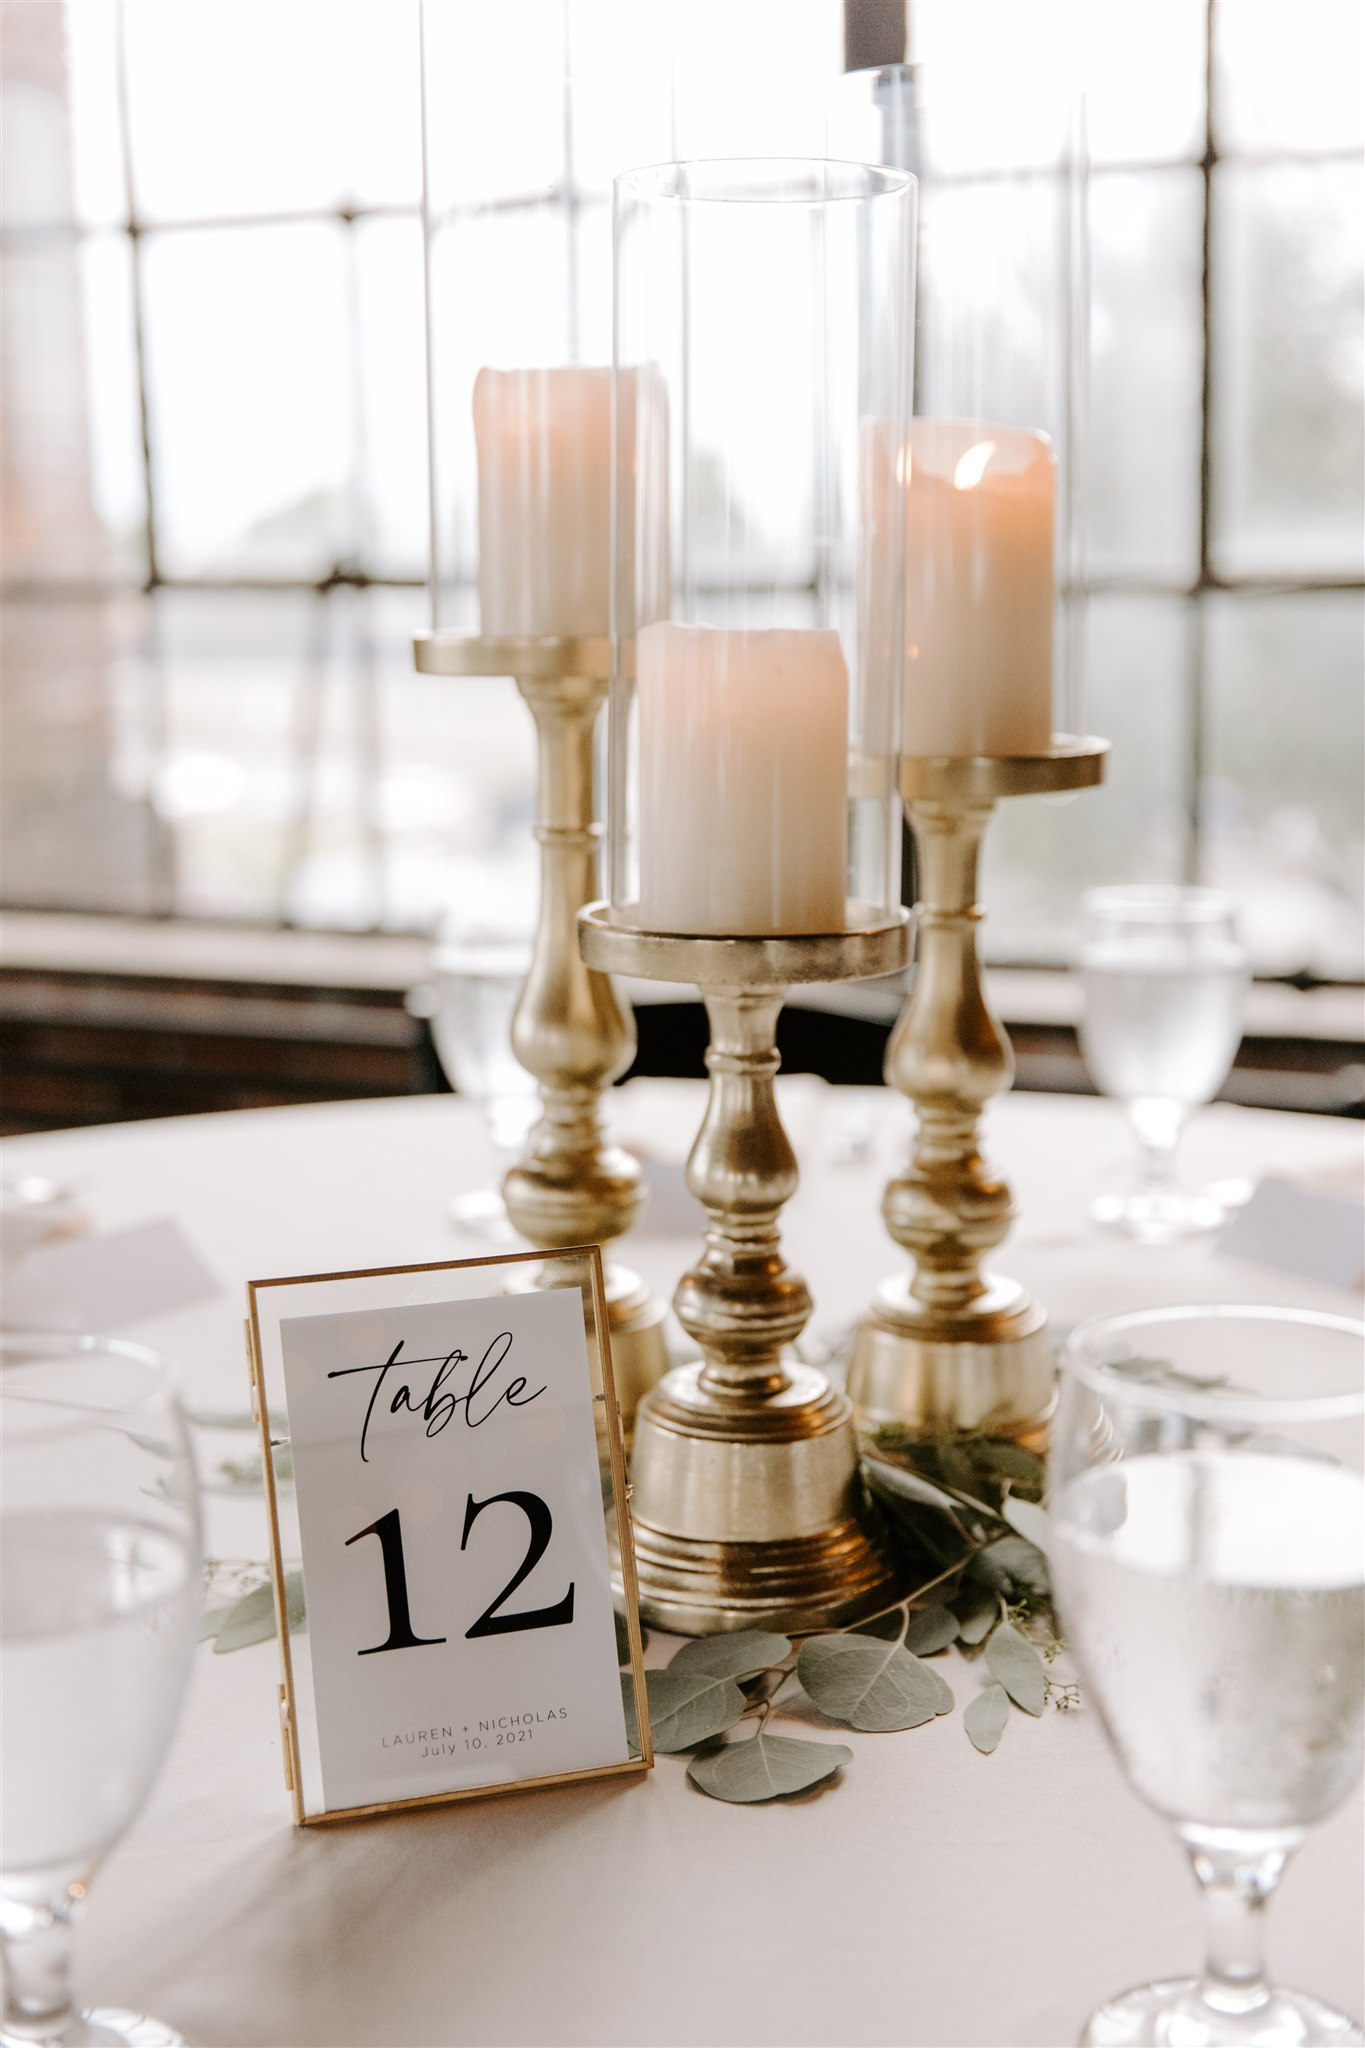 Elevated candle wedding centerpieces